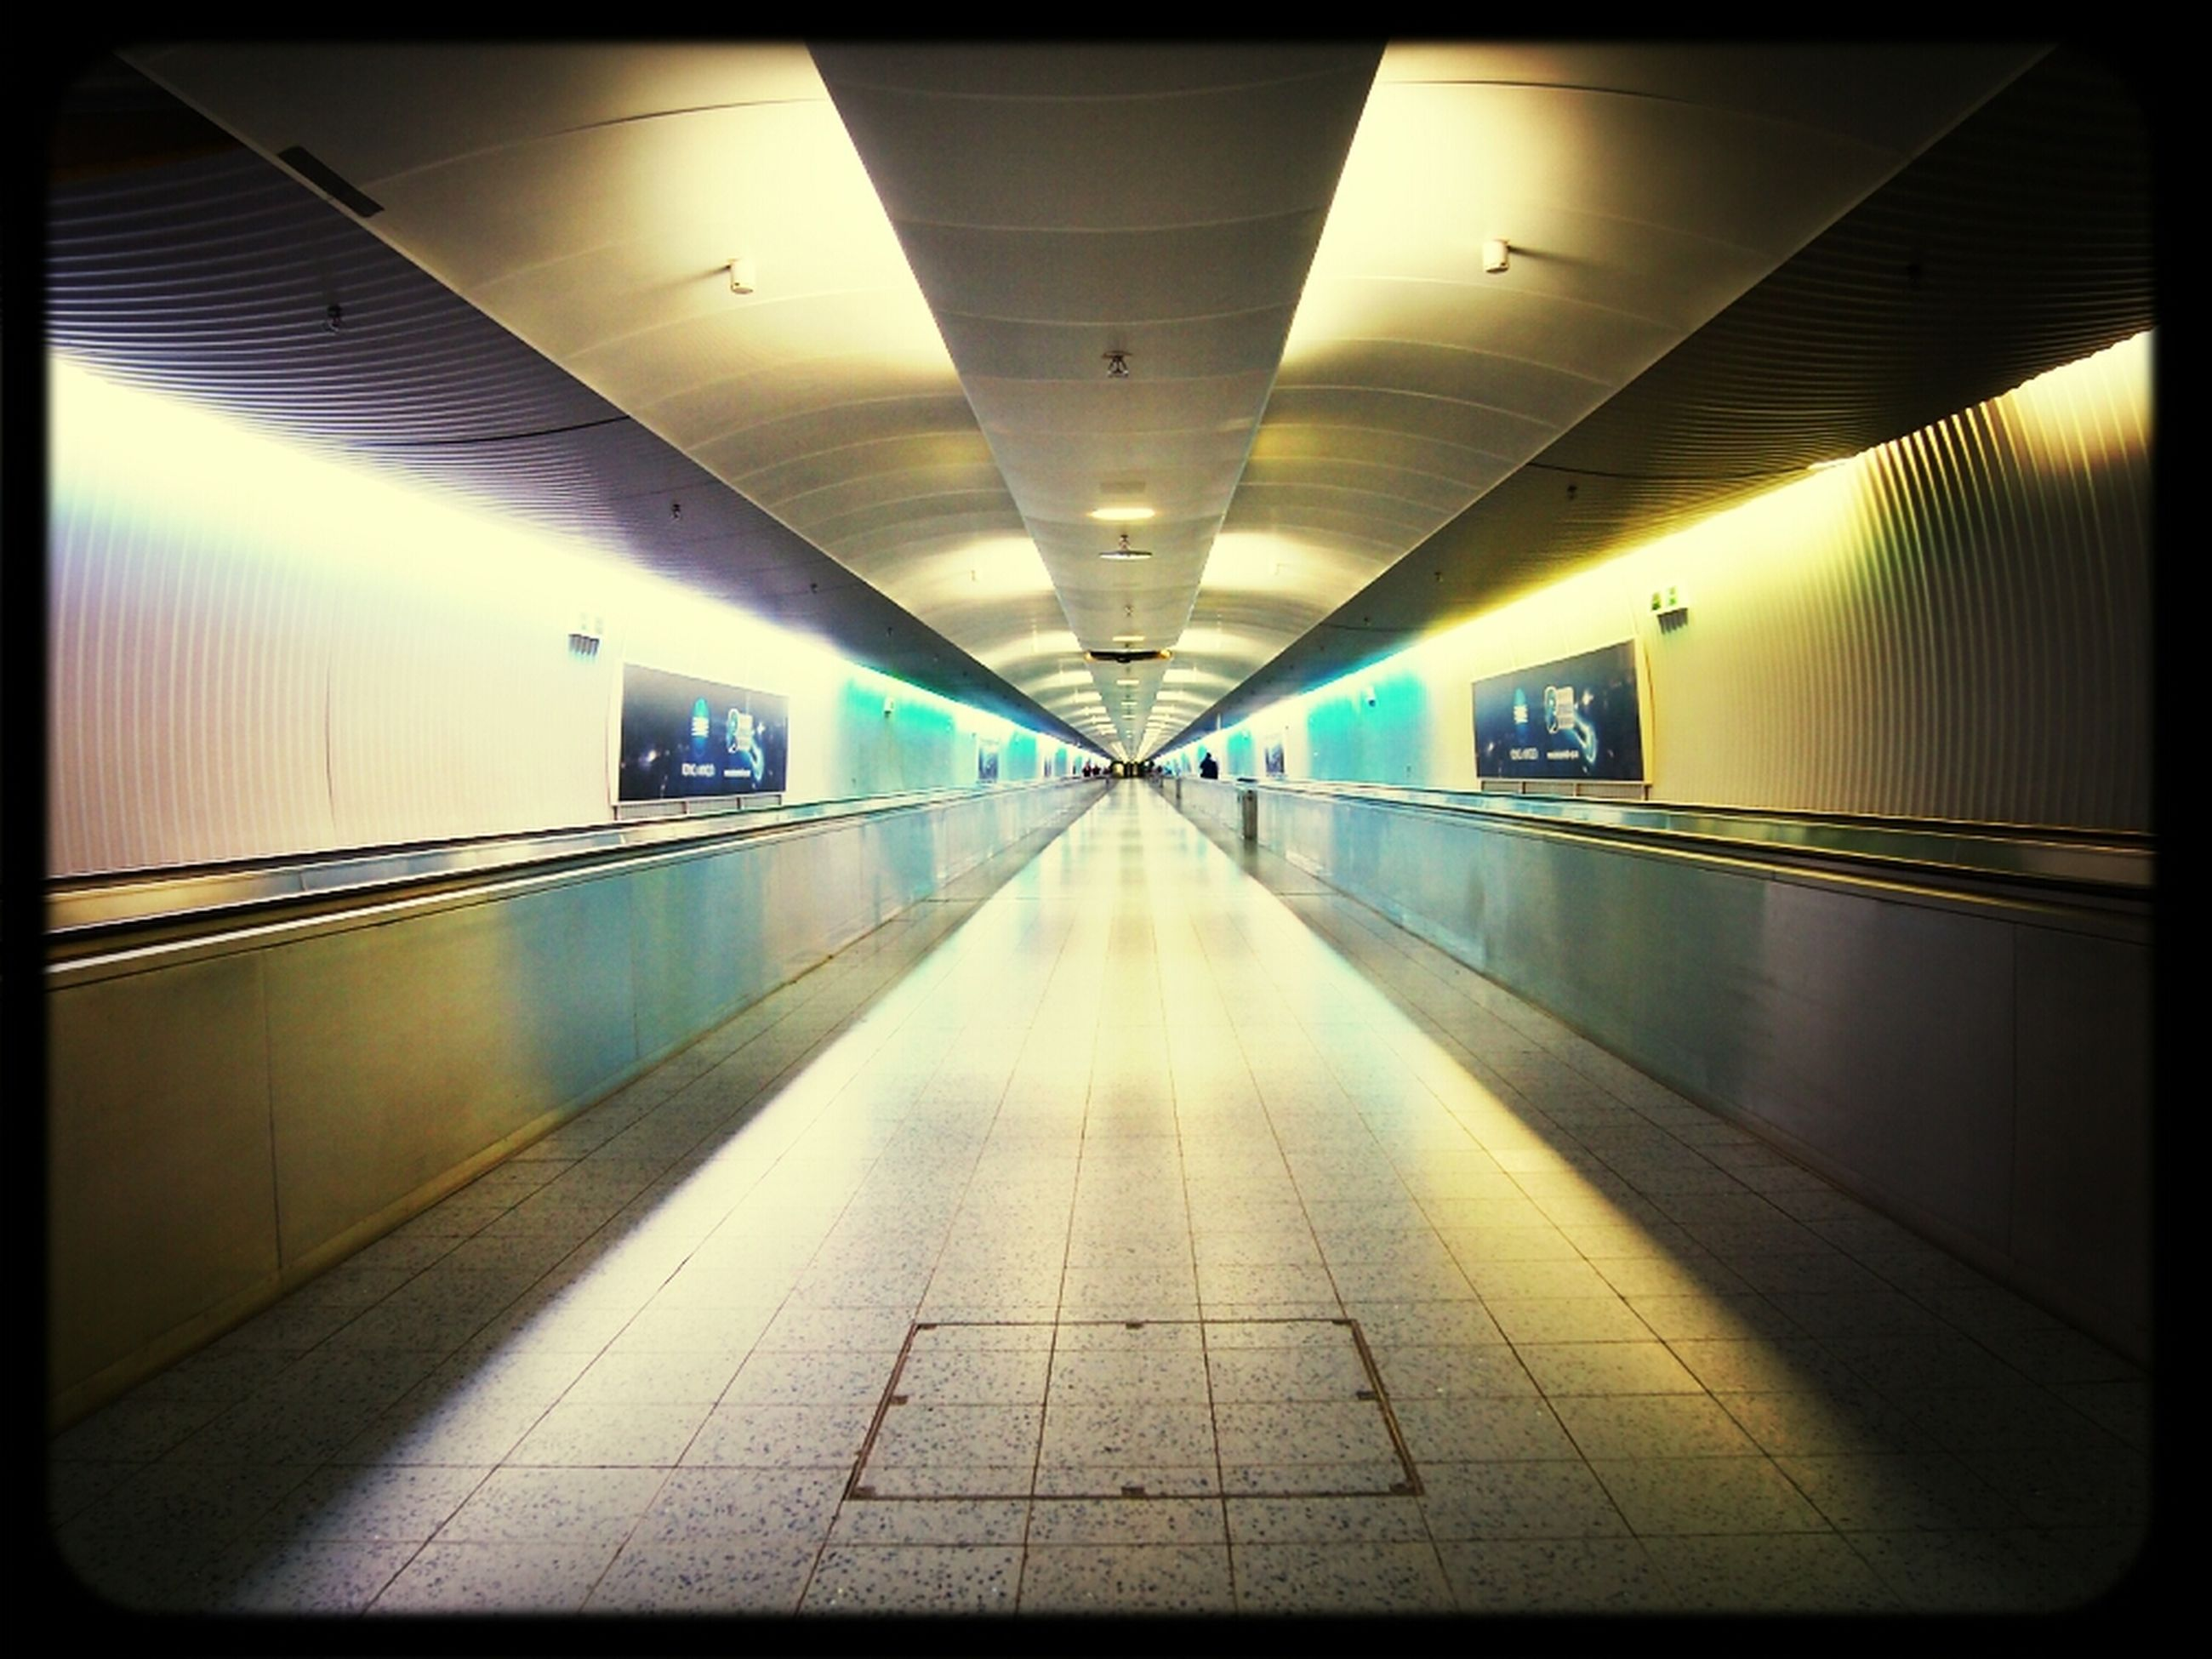 indoors, illuminated, the way forward, ceiling, transfer print, corridor, diminishing perspective, lighting equipment, architecture, auto post production filter, flooring, built structure, empty, tunnel, tiled floor, subway, vanishing point, underground, underpass, tile